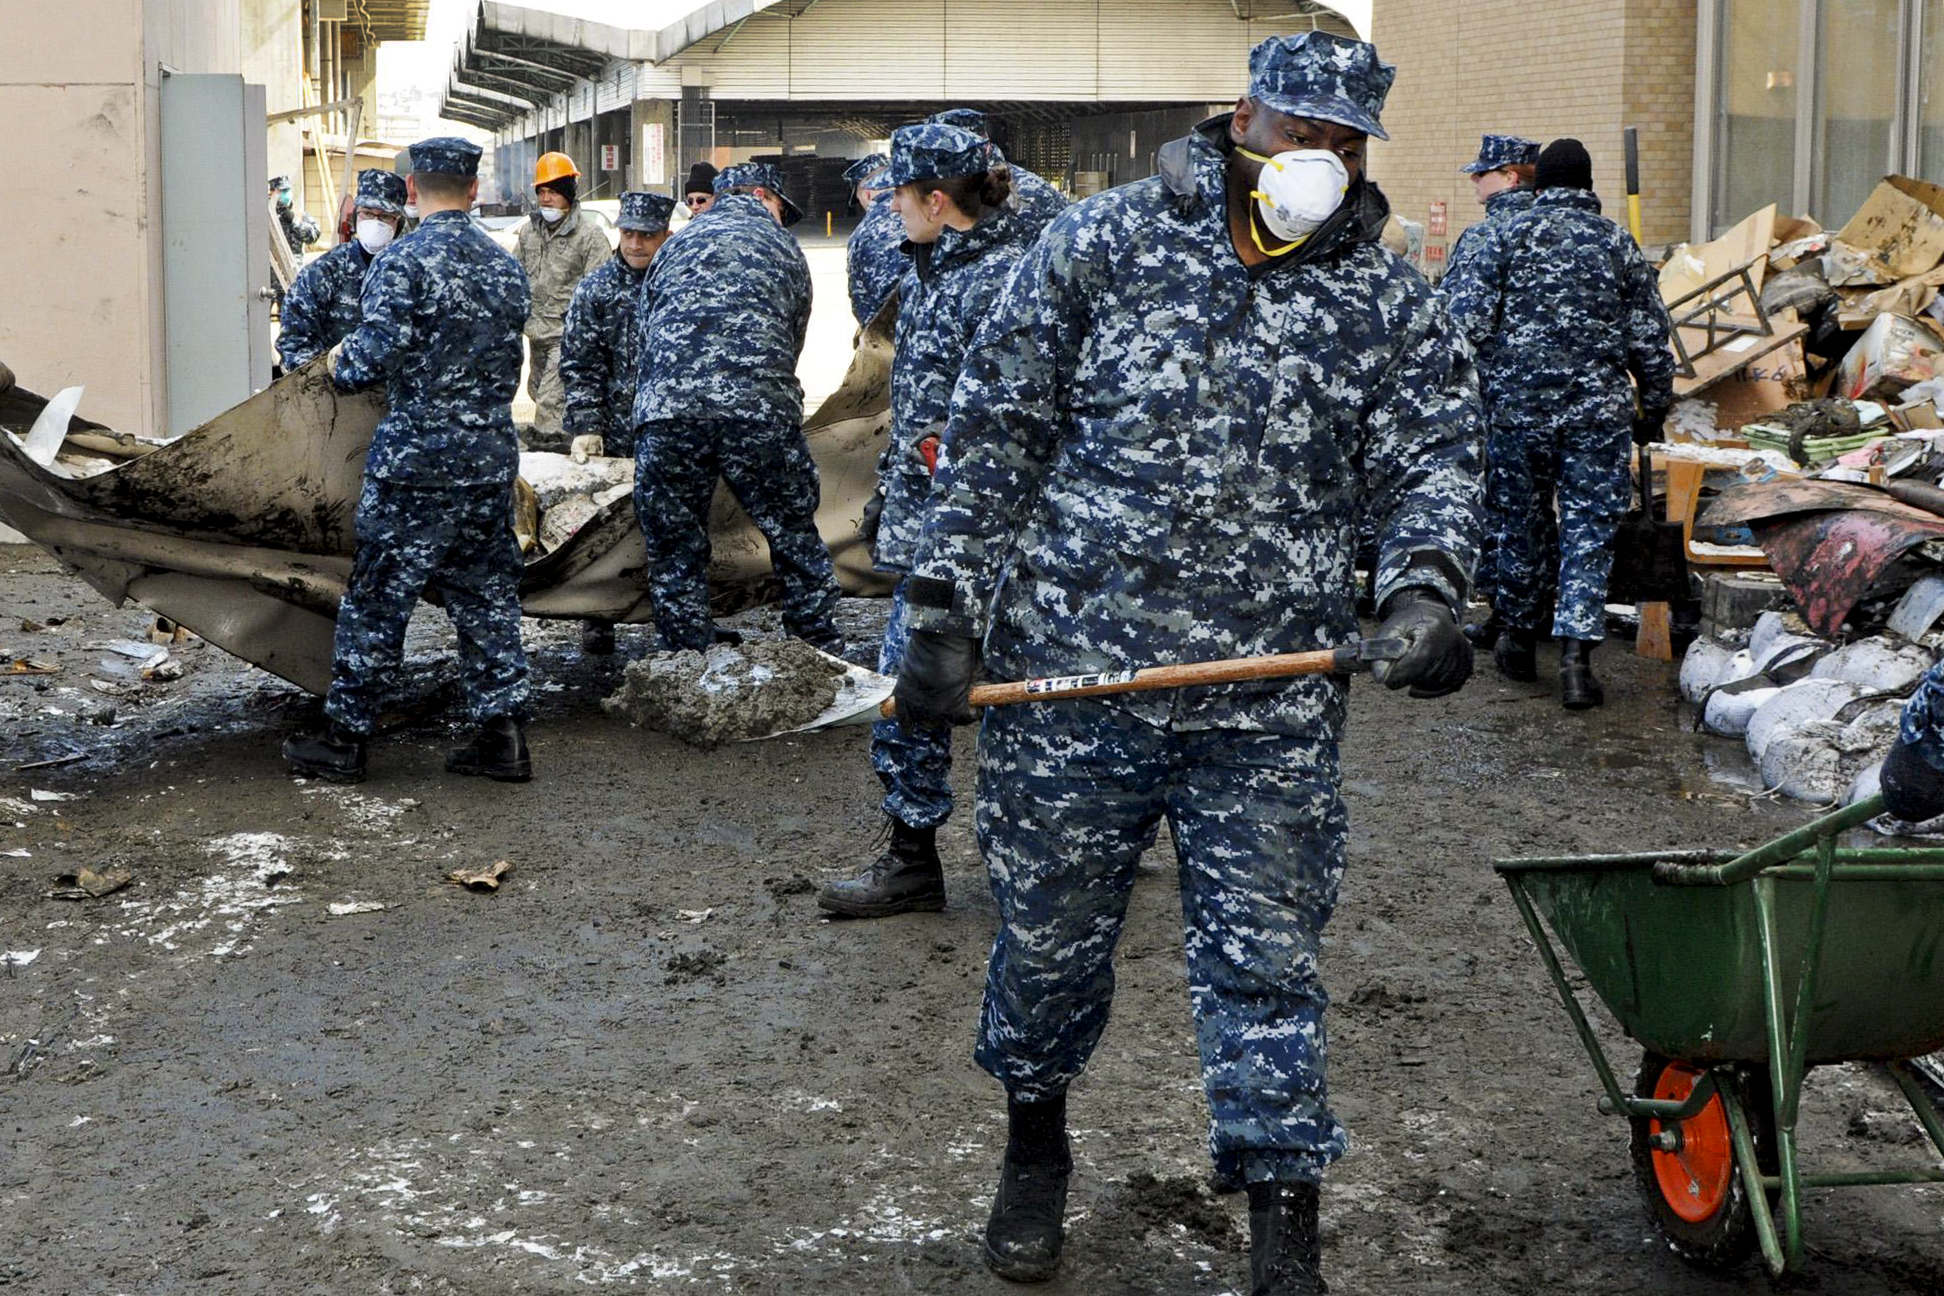 File:US sailors japan ...